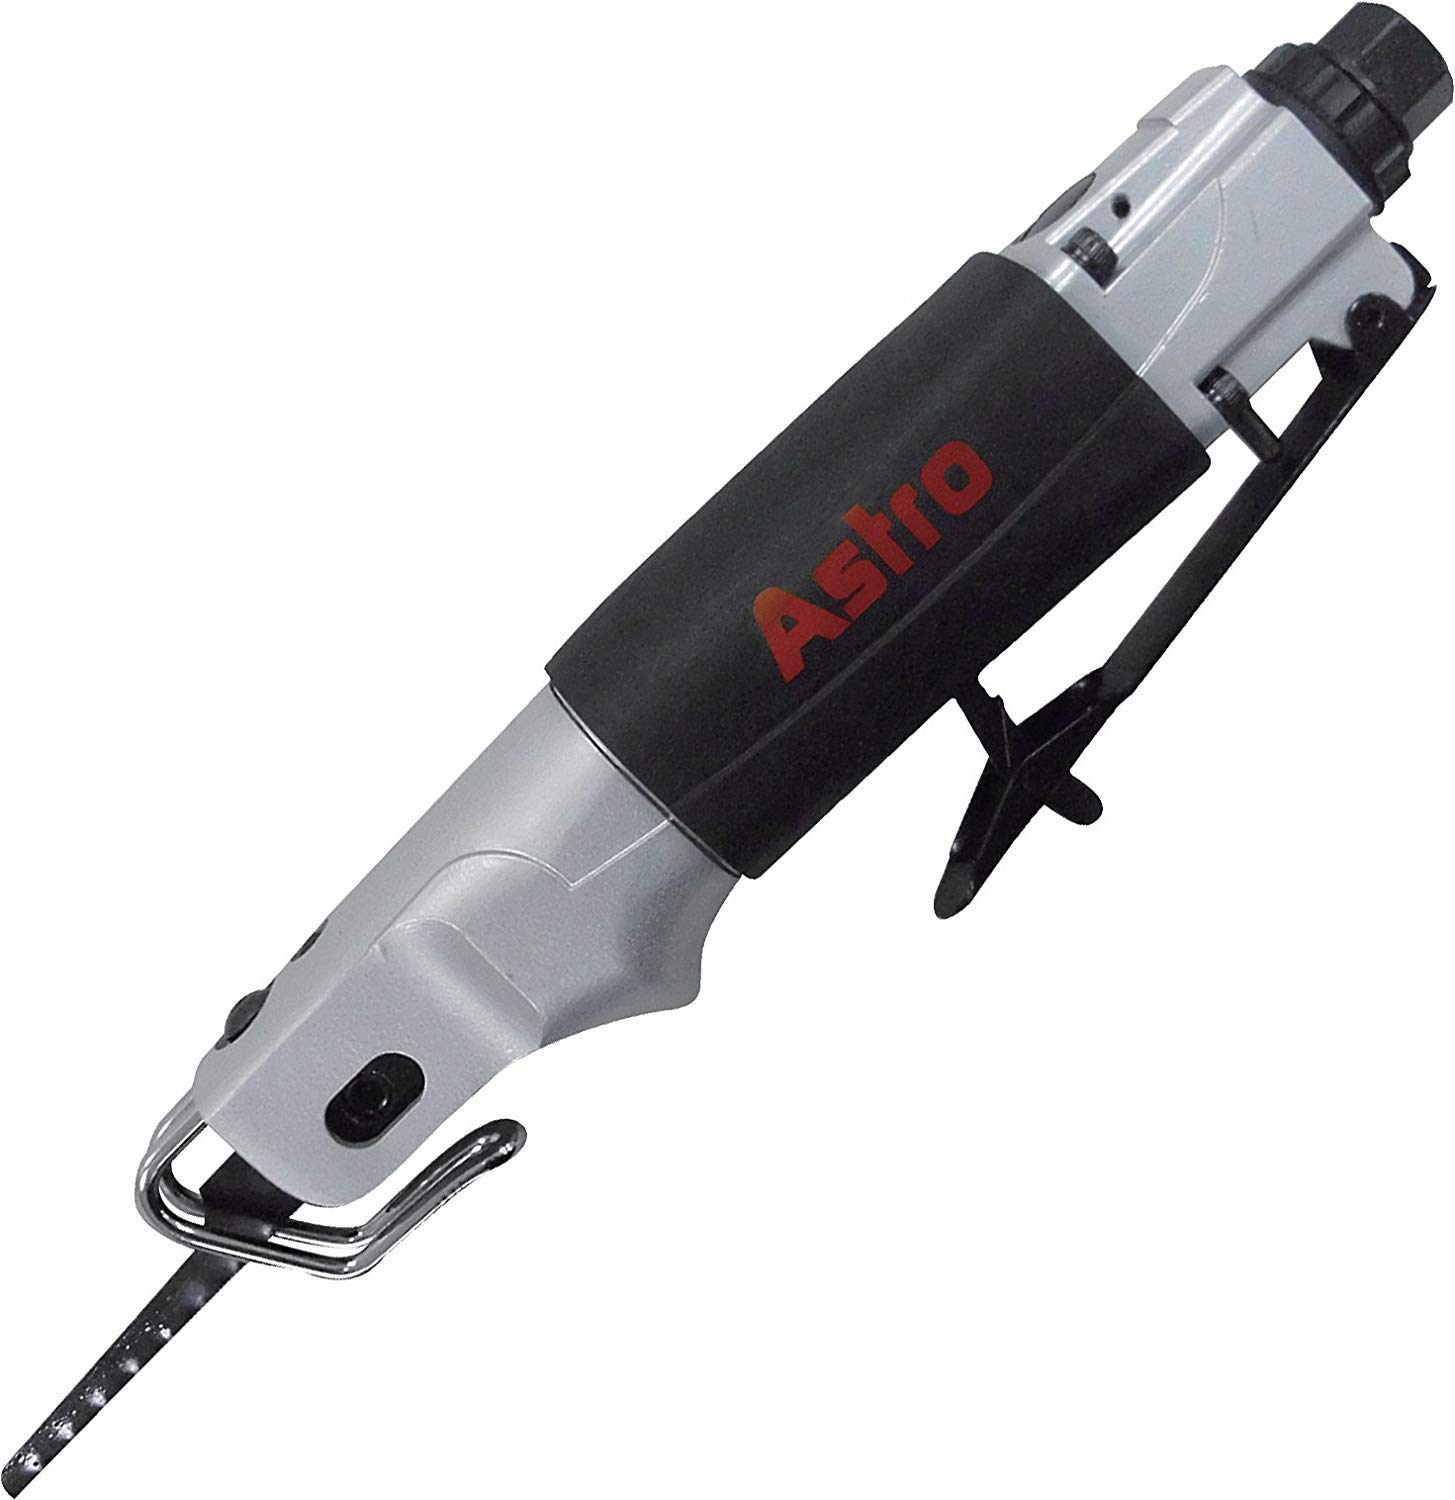 Astro Pneumatic Tool 930 Air Body Saber Saw with 5pc 24 Teeth per Inch Saw Blades by Astro Pneumatic Tool